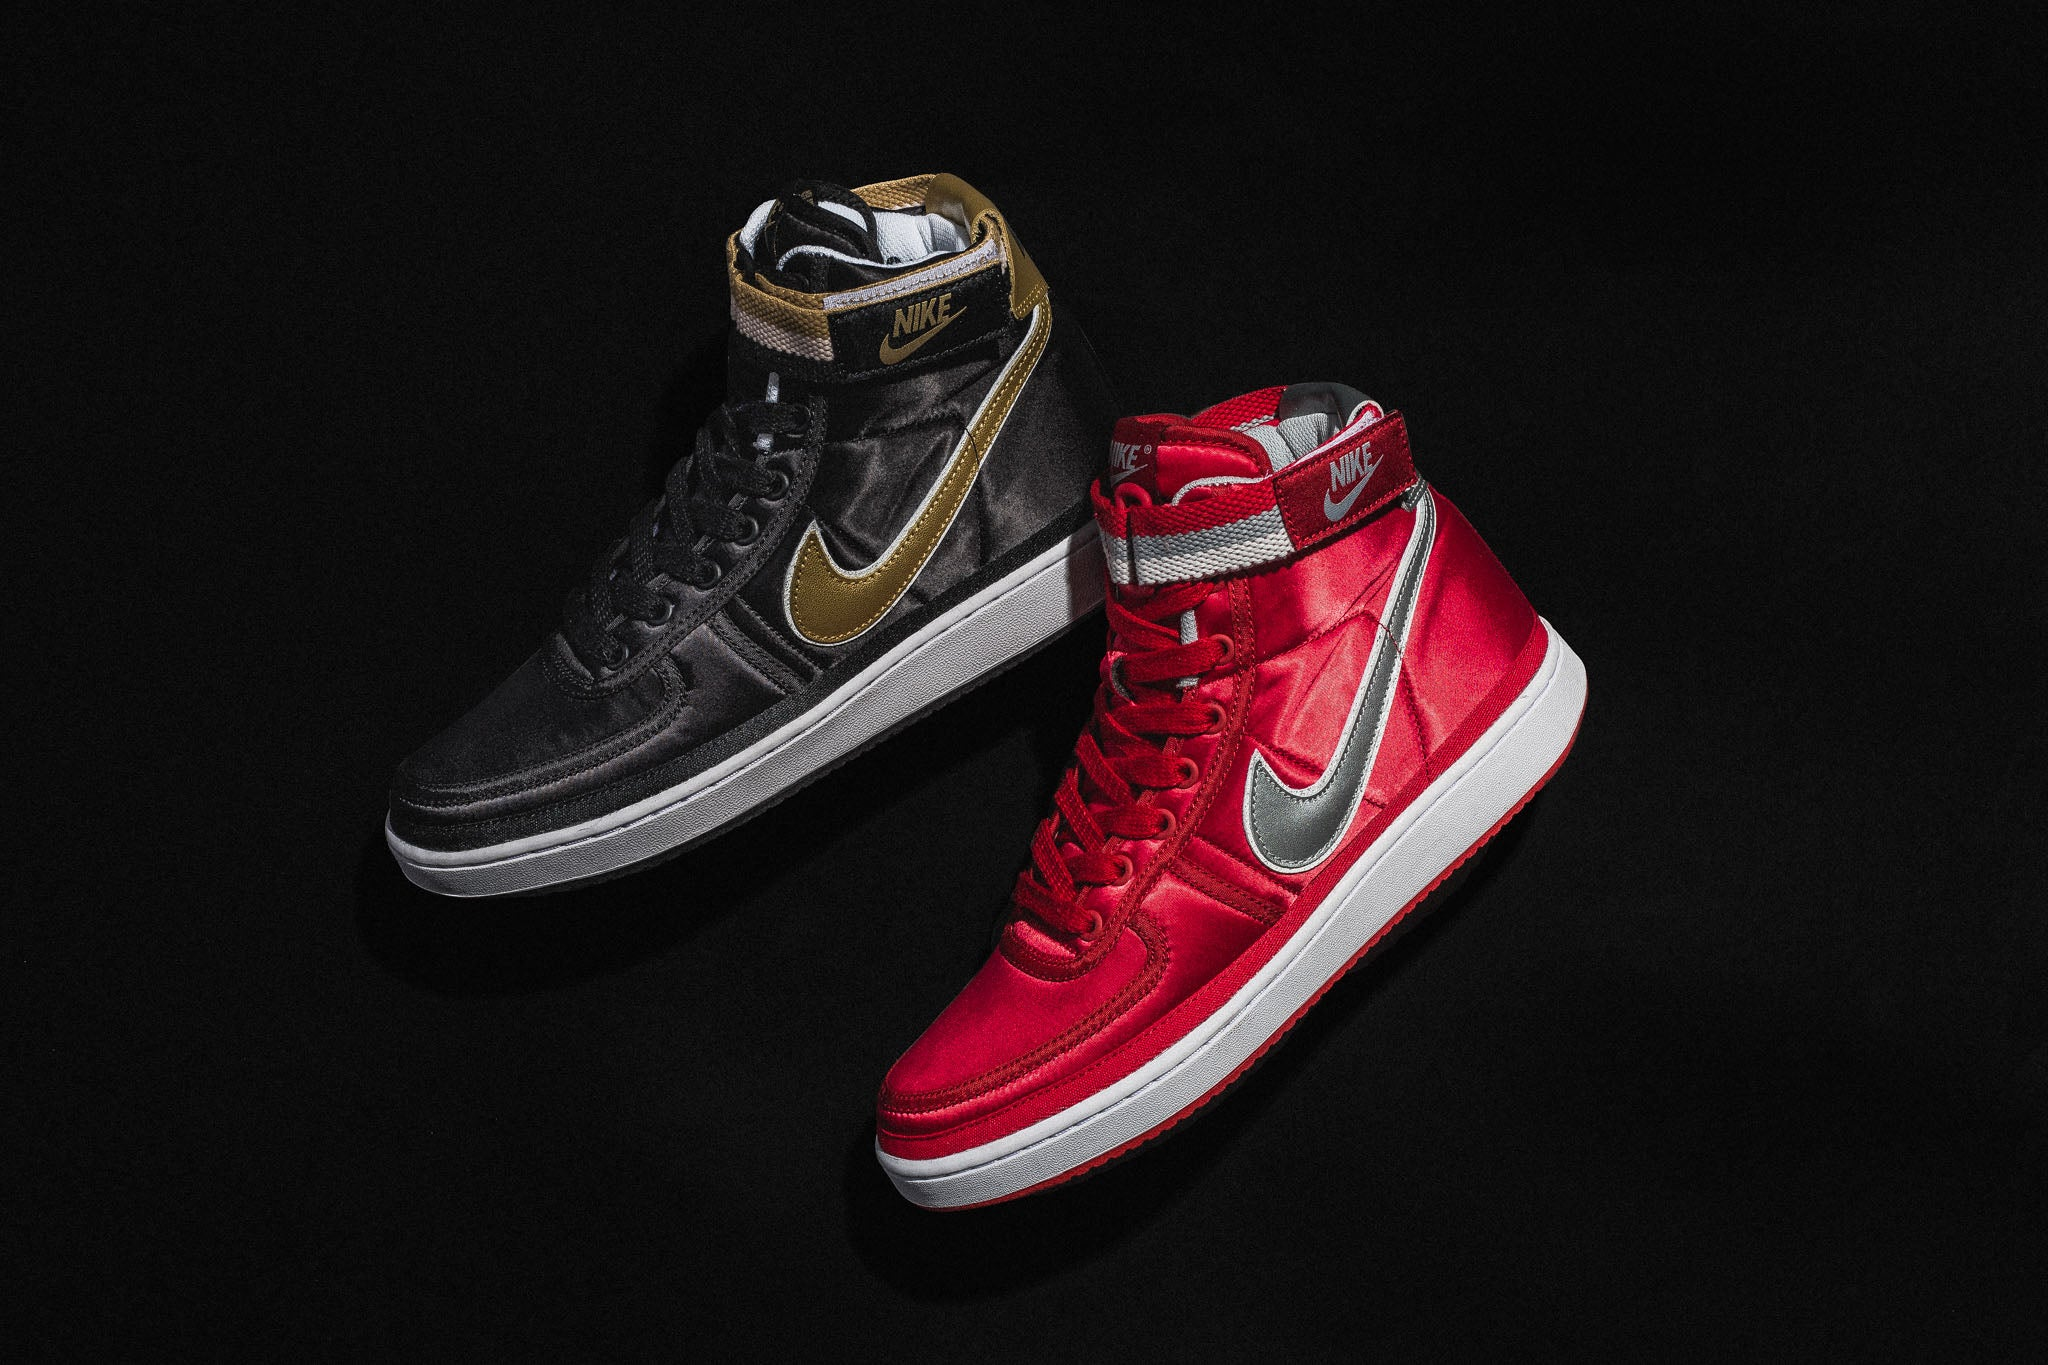 Nike Vandal High Supreme Collection 08.08.18